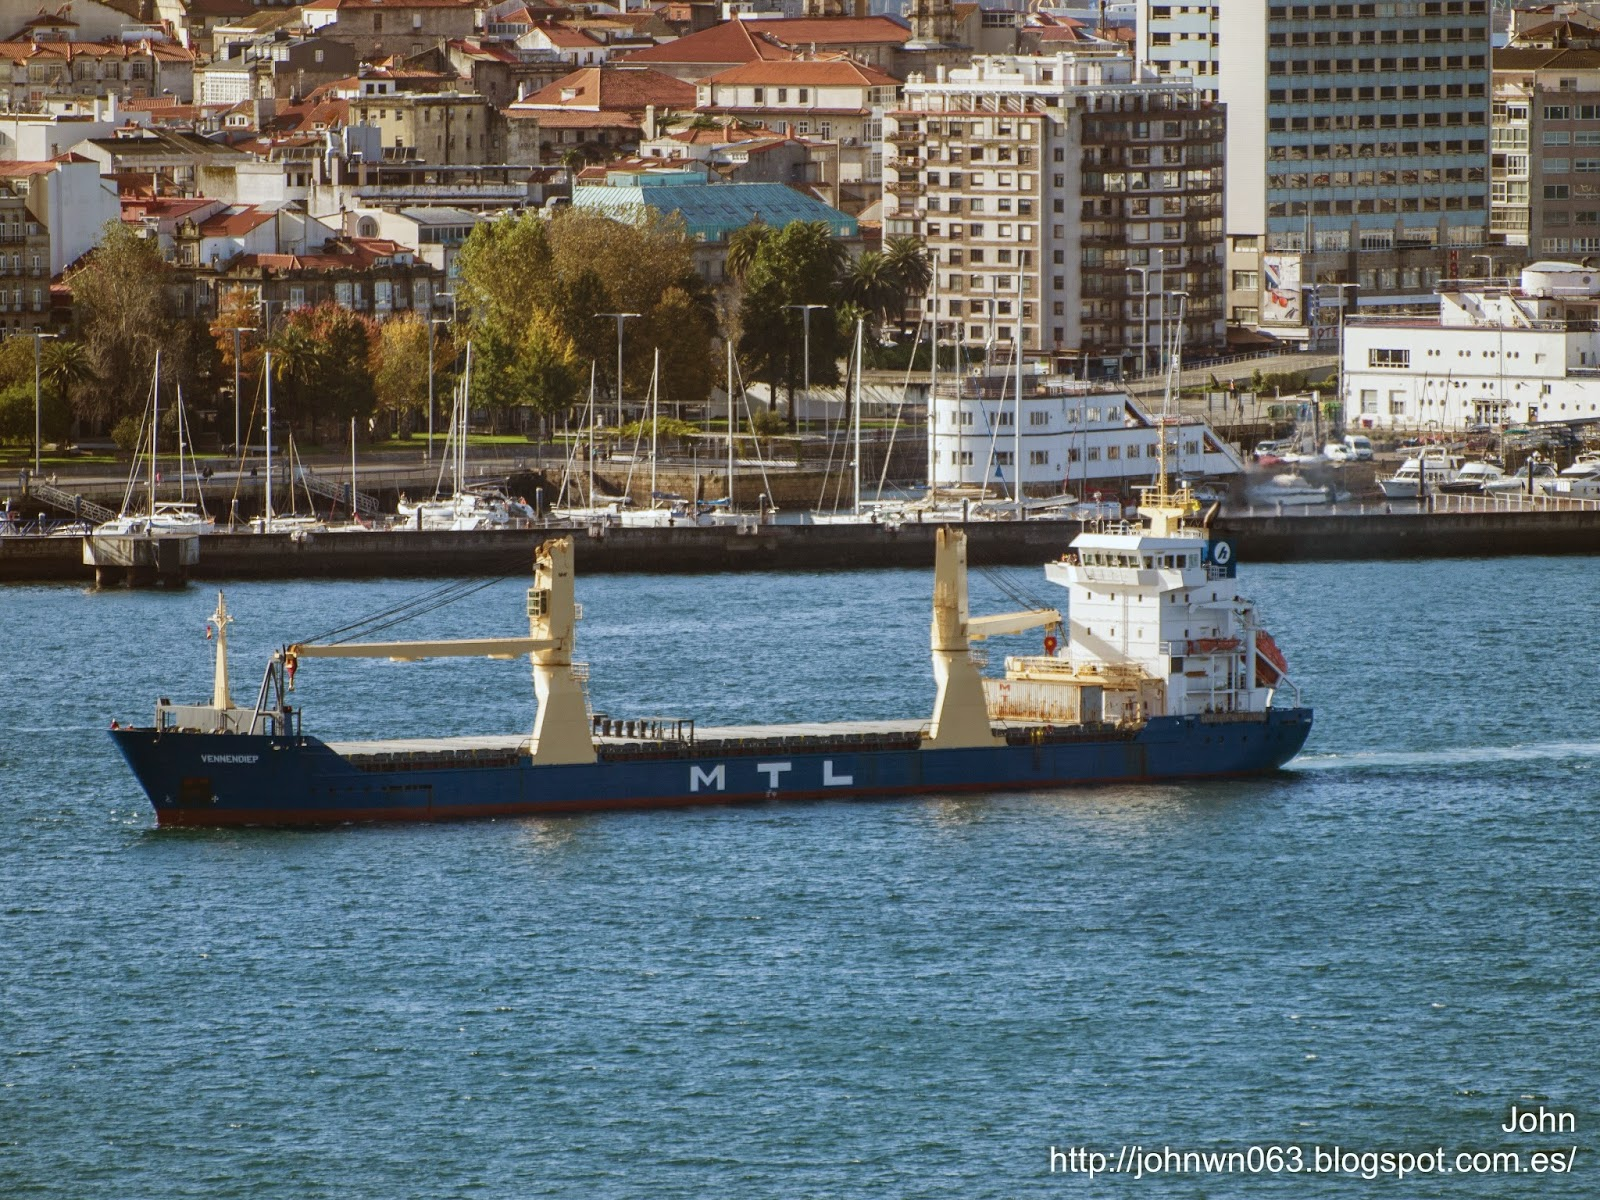 fotos de barcos, imagenes de barcos, feederlines, vennendiep, carga general, vigo